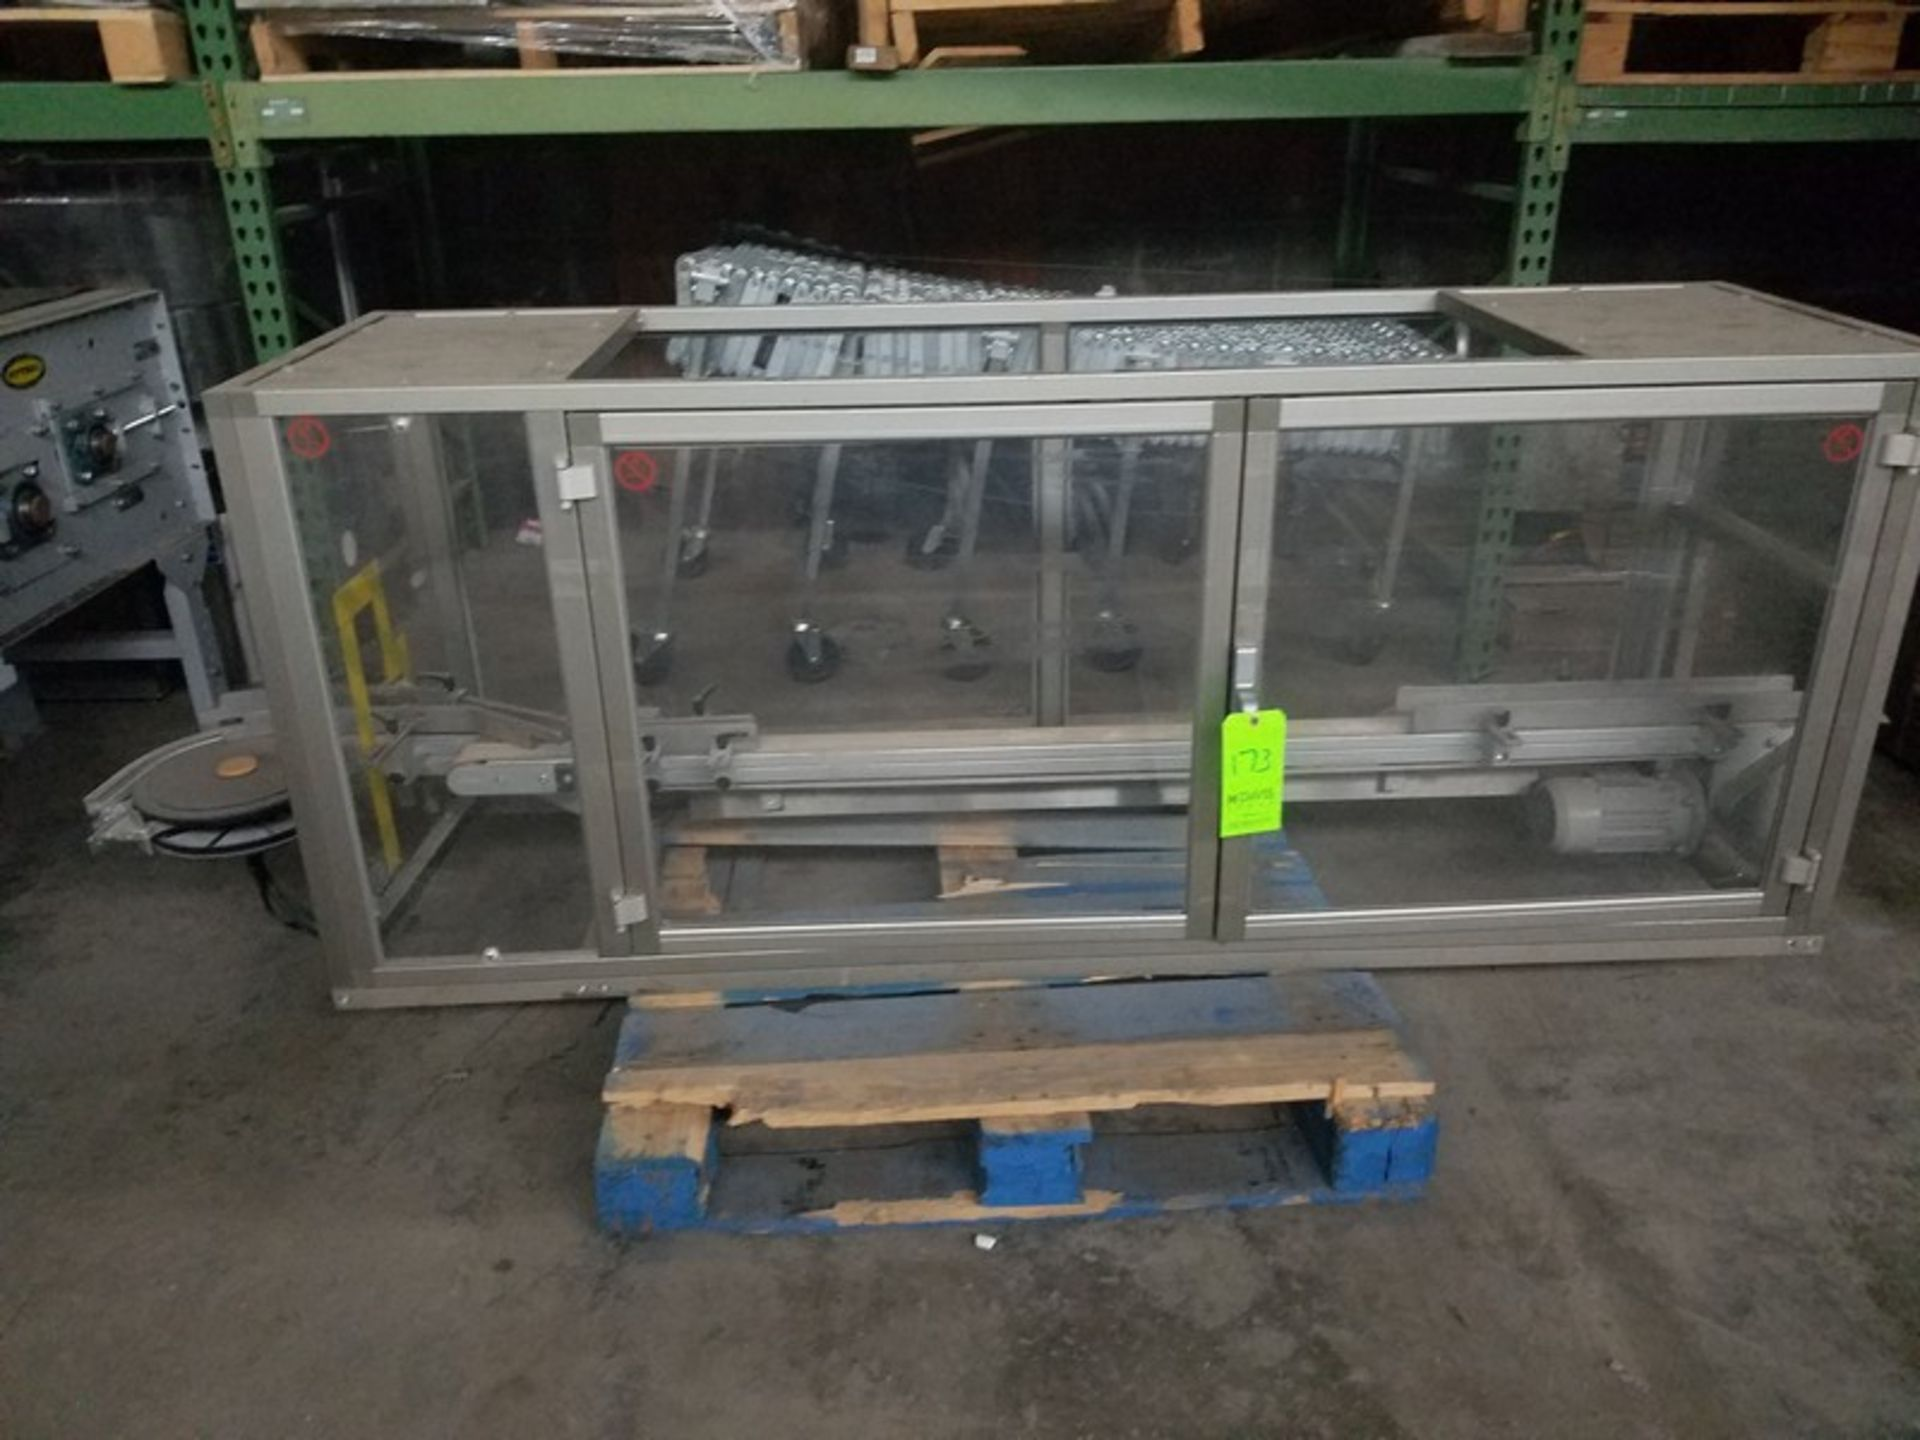 """Lot 173 - Enclosed Plexi-Glass Conveyor, Aprox. 84"""" L x 2-1/2"""" W Conv. Belt with Drive, with Double Plexi-"""